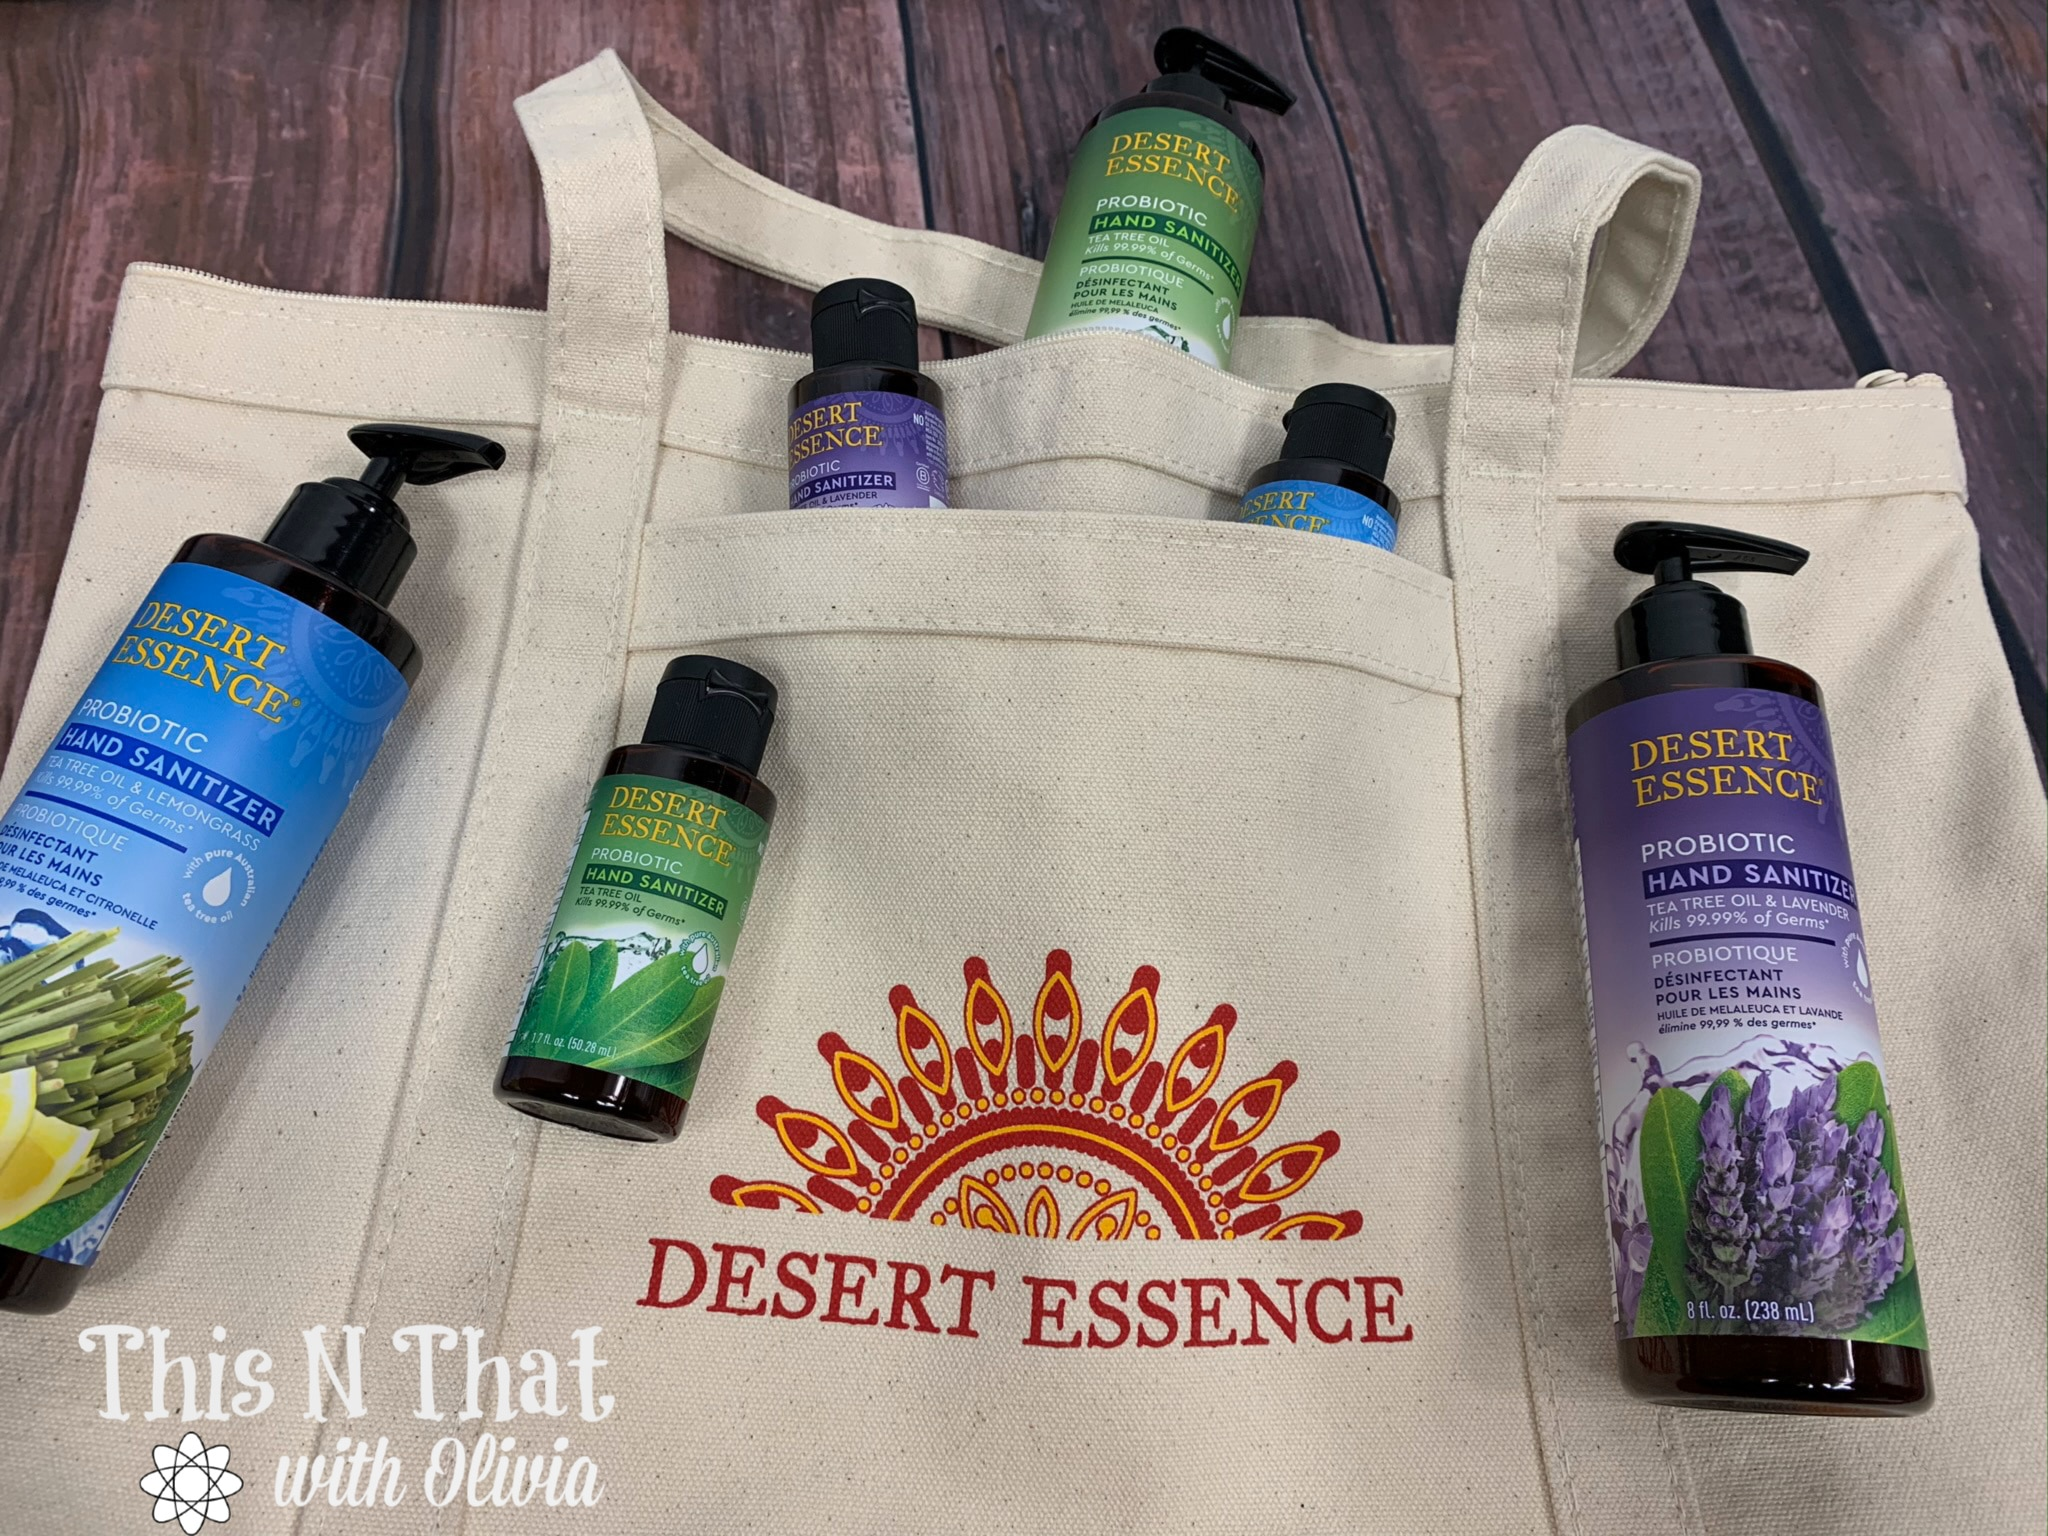 Keep Germs Away with Desert Essence Probiotic Hand Sanitizer